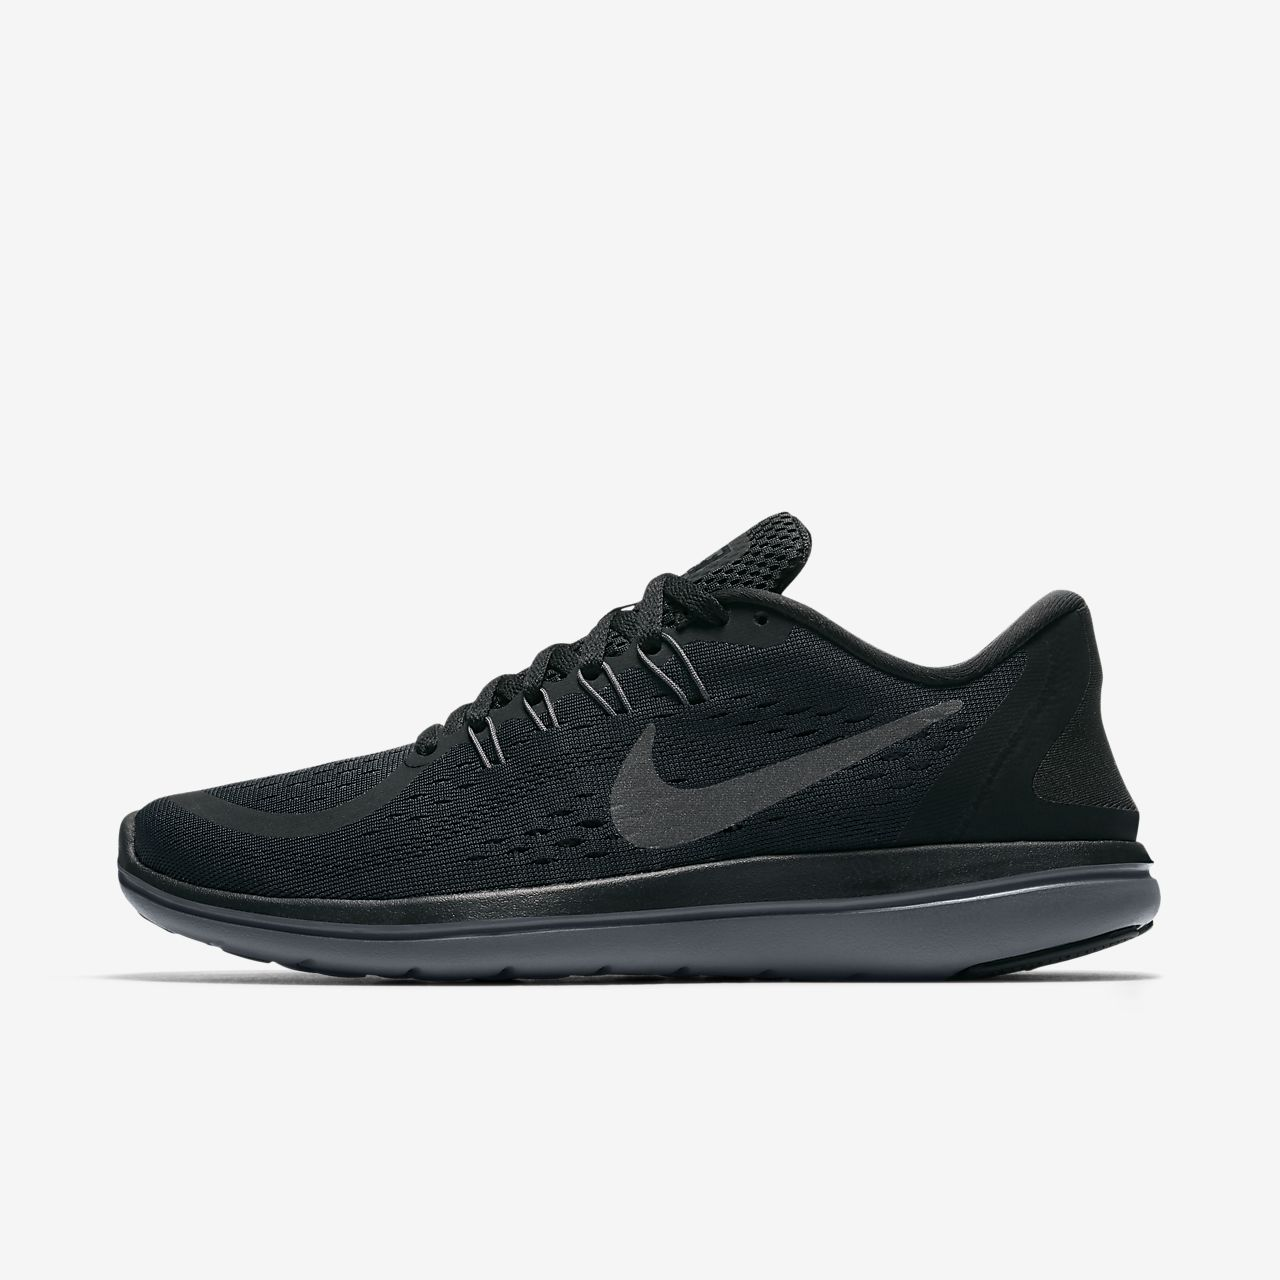 Nike Free Rn Woman Shoes